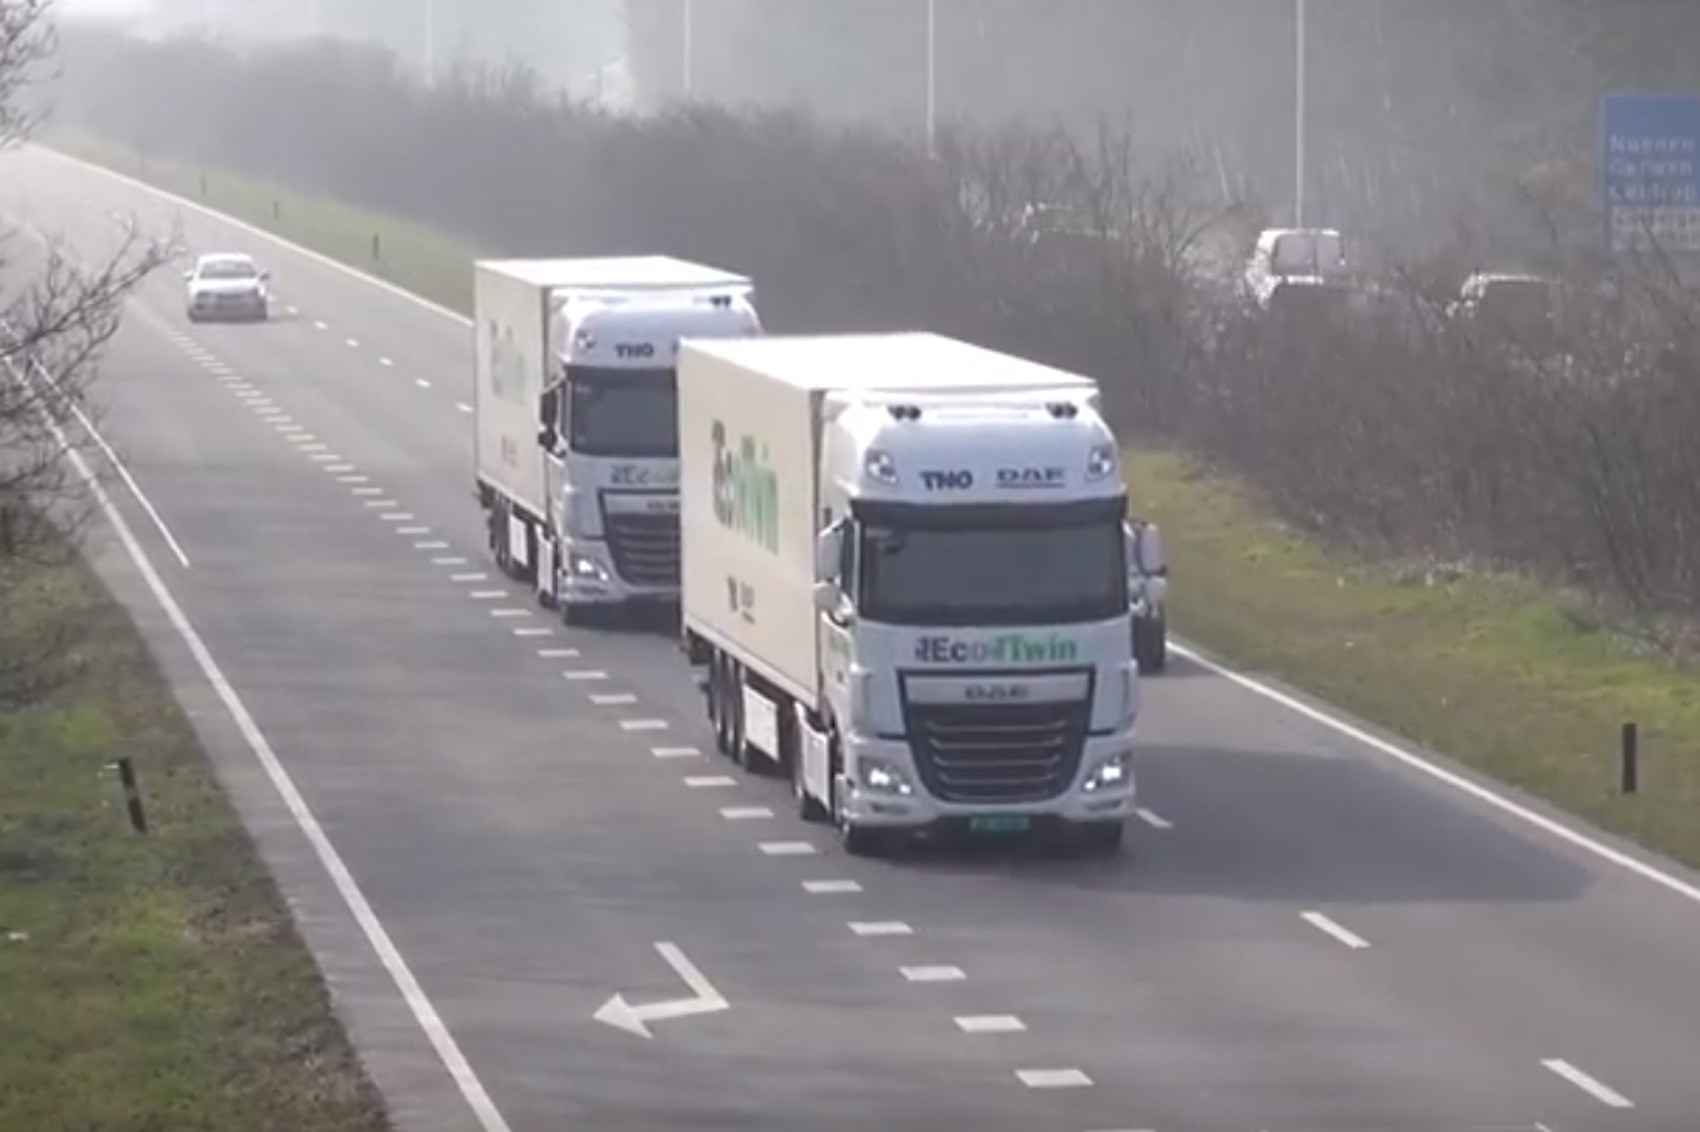 Government Lorry Tech Trial To Sync Acceleration, Braking & Steering